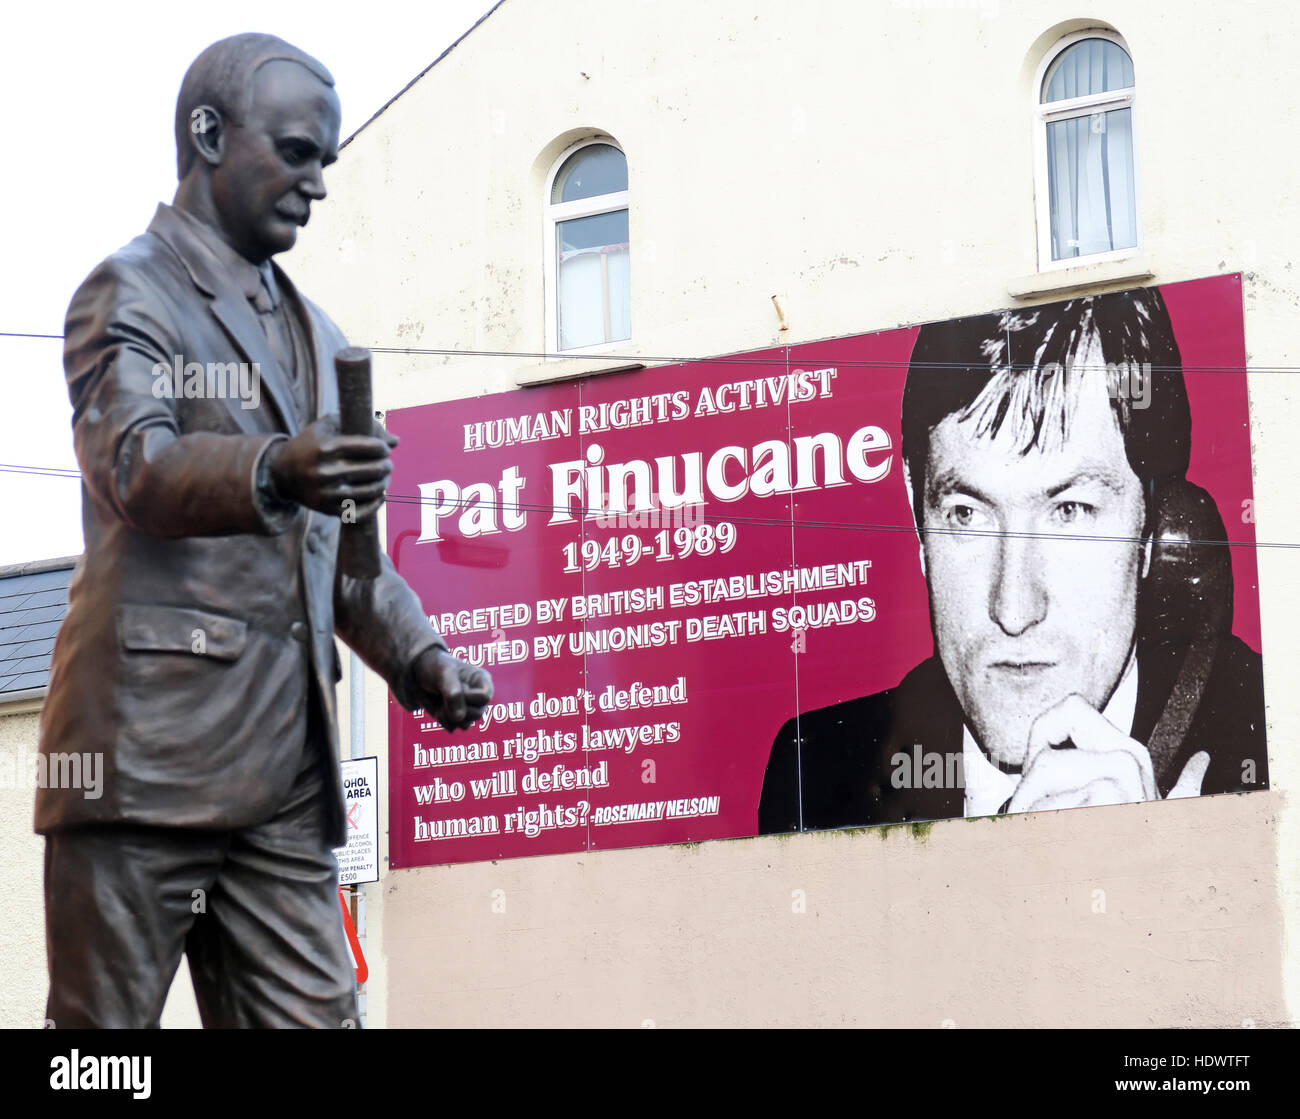 Road,painting,graffiti,resistance,IRA,peace,Northern Ireland,NI,UK,St,street,Eire,Irish,Republic,Irish Republic,conflict,Irish Republican Army,Political Change,Easter Rising,James Connolly,Seamus Ó Conghaile,outside,society,HQ,office,Erected,March,2016,James Connolly statue,bronze,Pat,Finucane,GoTonySmith,@HotpixUK,Tony,Smith,UK,GB,Great,Britain,United,Kingdom,Irish,British,Ireland,problem,with,problem with,issue with,NI,Northern,Northern Ireland,Belfast,City,Centre,Art,Artists,the,troubles,The Troubles,Good Friday Agreement,Peace,honour,painting,wall,walls,tribute,republicanism,Fight,Justice,West,Beal,feirste,martyrs,social,tour,tourism,tourists,urban,six,counties,6,backdrop,county,Antrim,occupation,good,Friday,agreement,peace,reconciliation,IRA,terror,terrorists,genocide,catholic,community,catholics,Buy Pictures of,Buy Images Of,Images of,Stock Images,Tony Smith,United Kingdom,Great Britain,British Isles,republican cause,Belfast Catholic Community